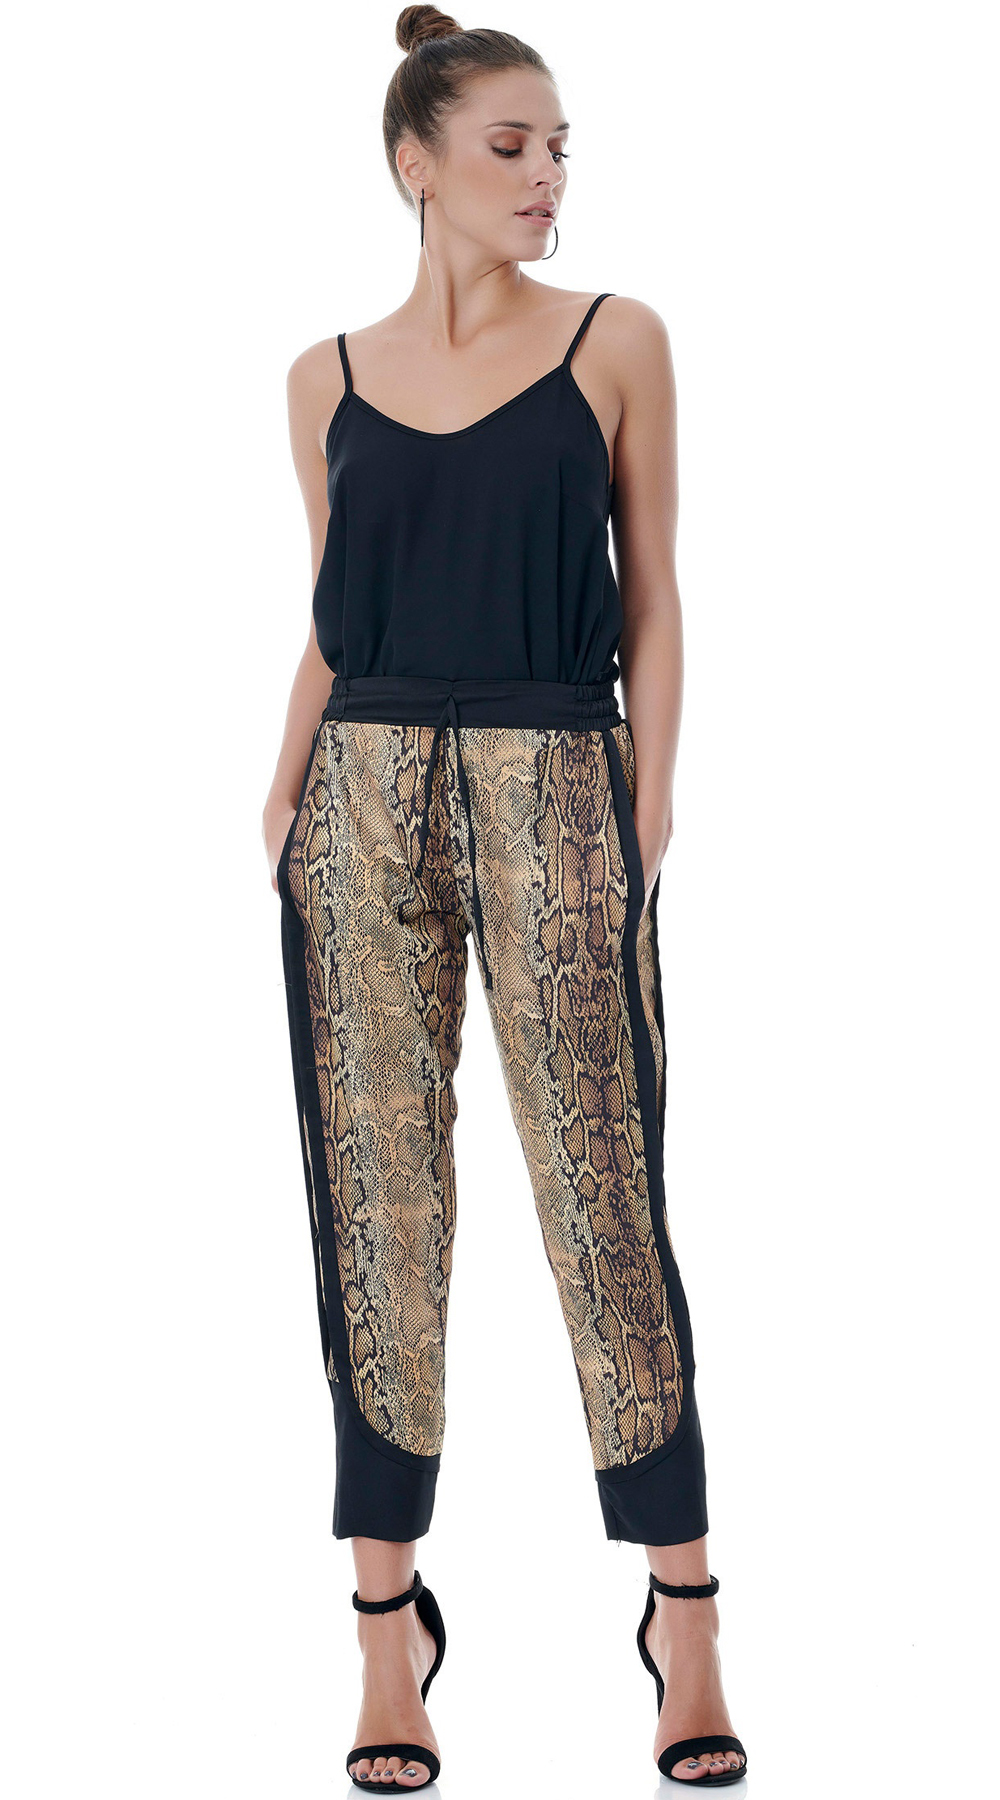 Snake Print Satin Παντελόνι με τσέπες ONLINE - ONLINE - FA18ON-32217 animal prints animal prints